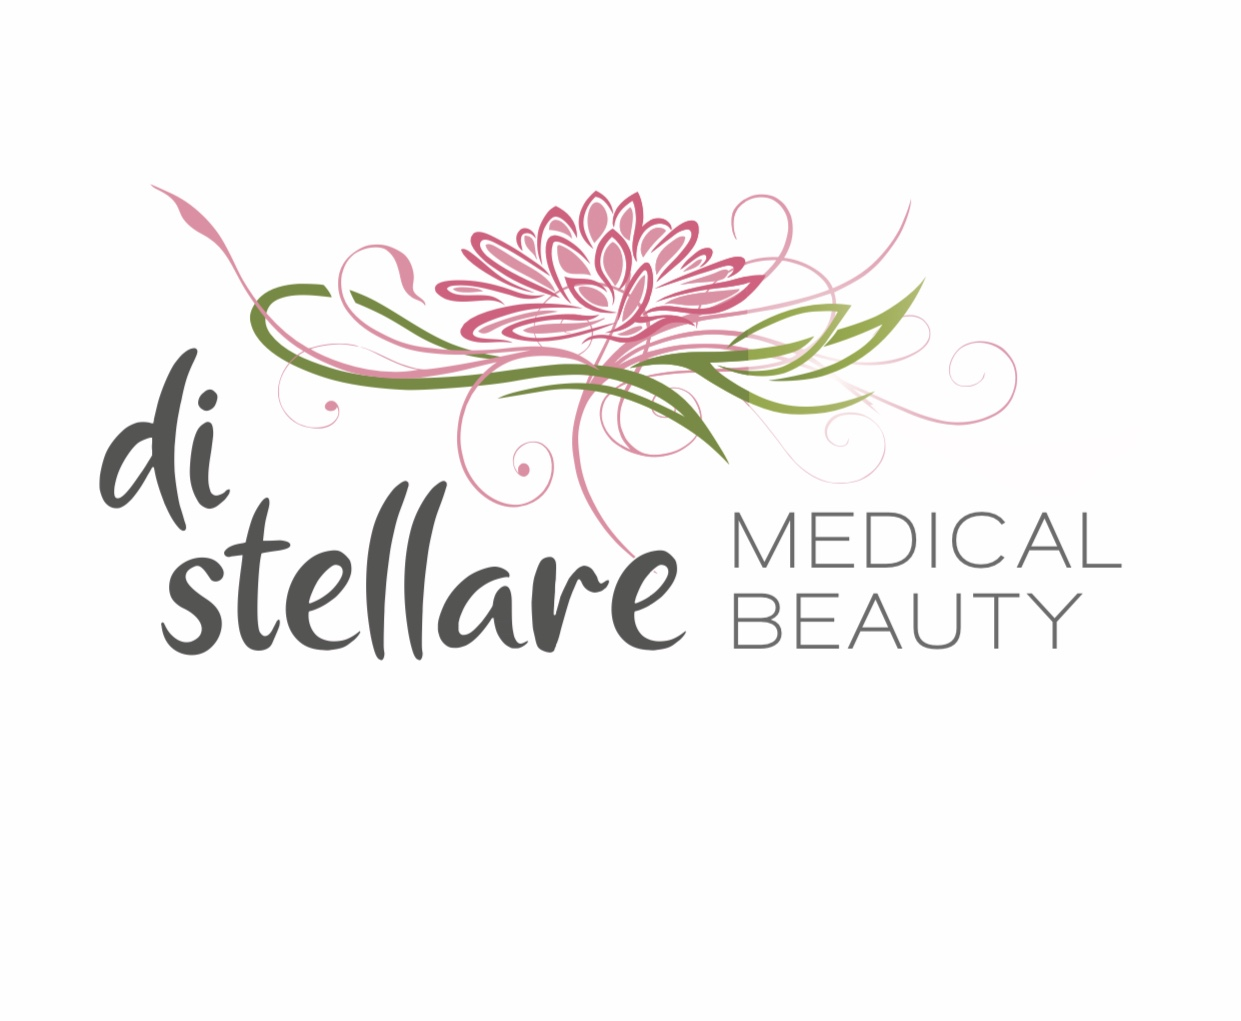 Medical Beauty di stellare Logo